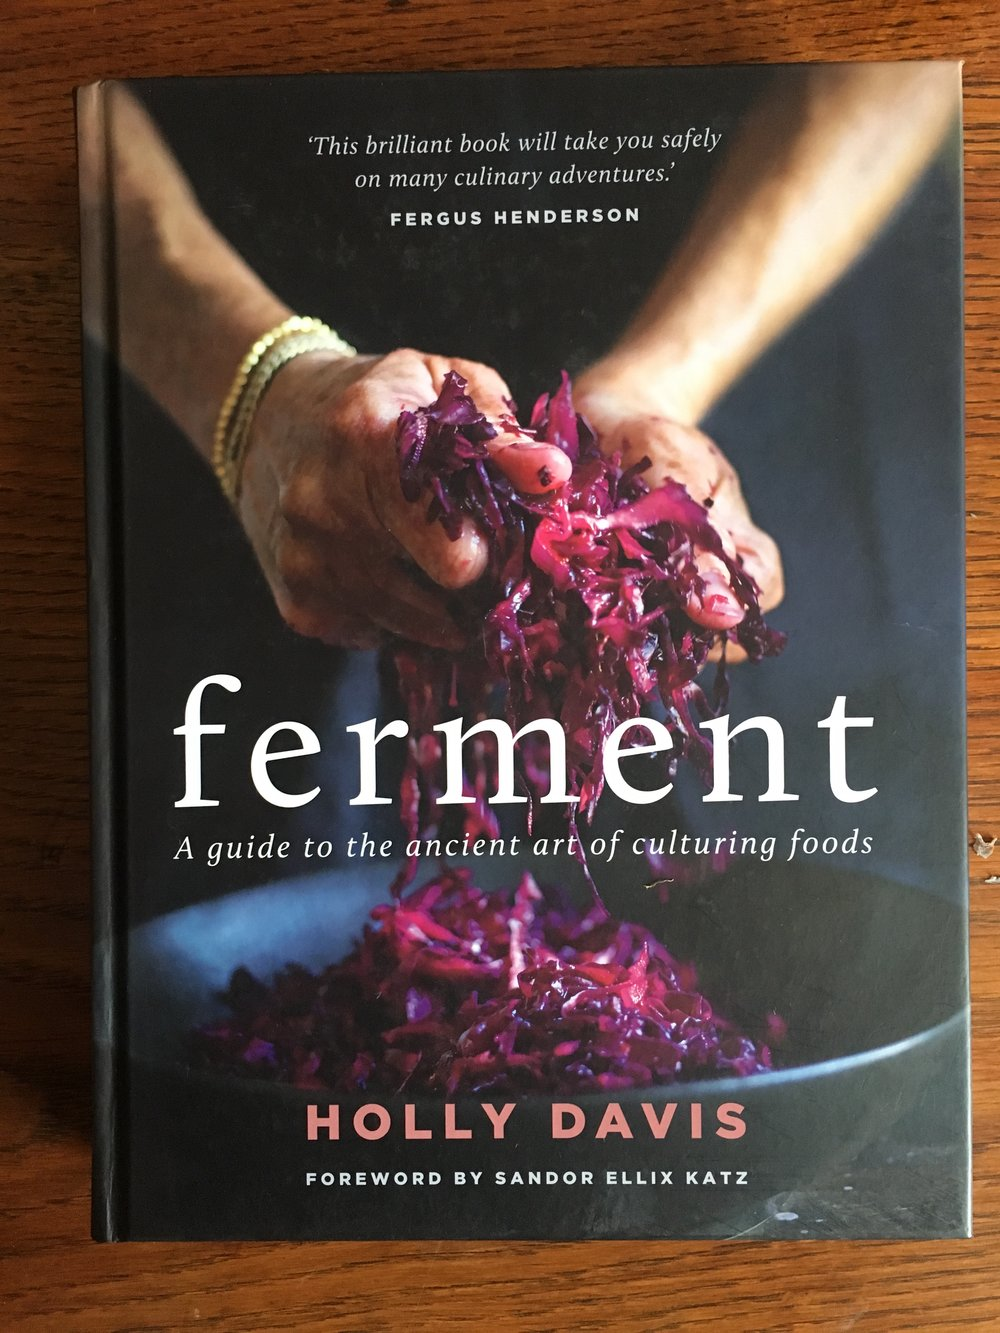 Ferment - A good and very pretty recipe book if you're interested in fermenting your own. She is a little precious at points, but does include some really interesting products and flavours.